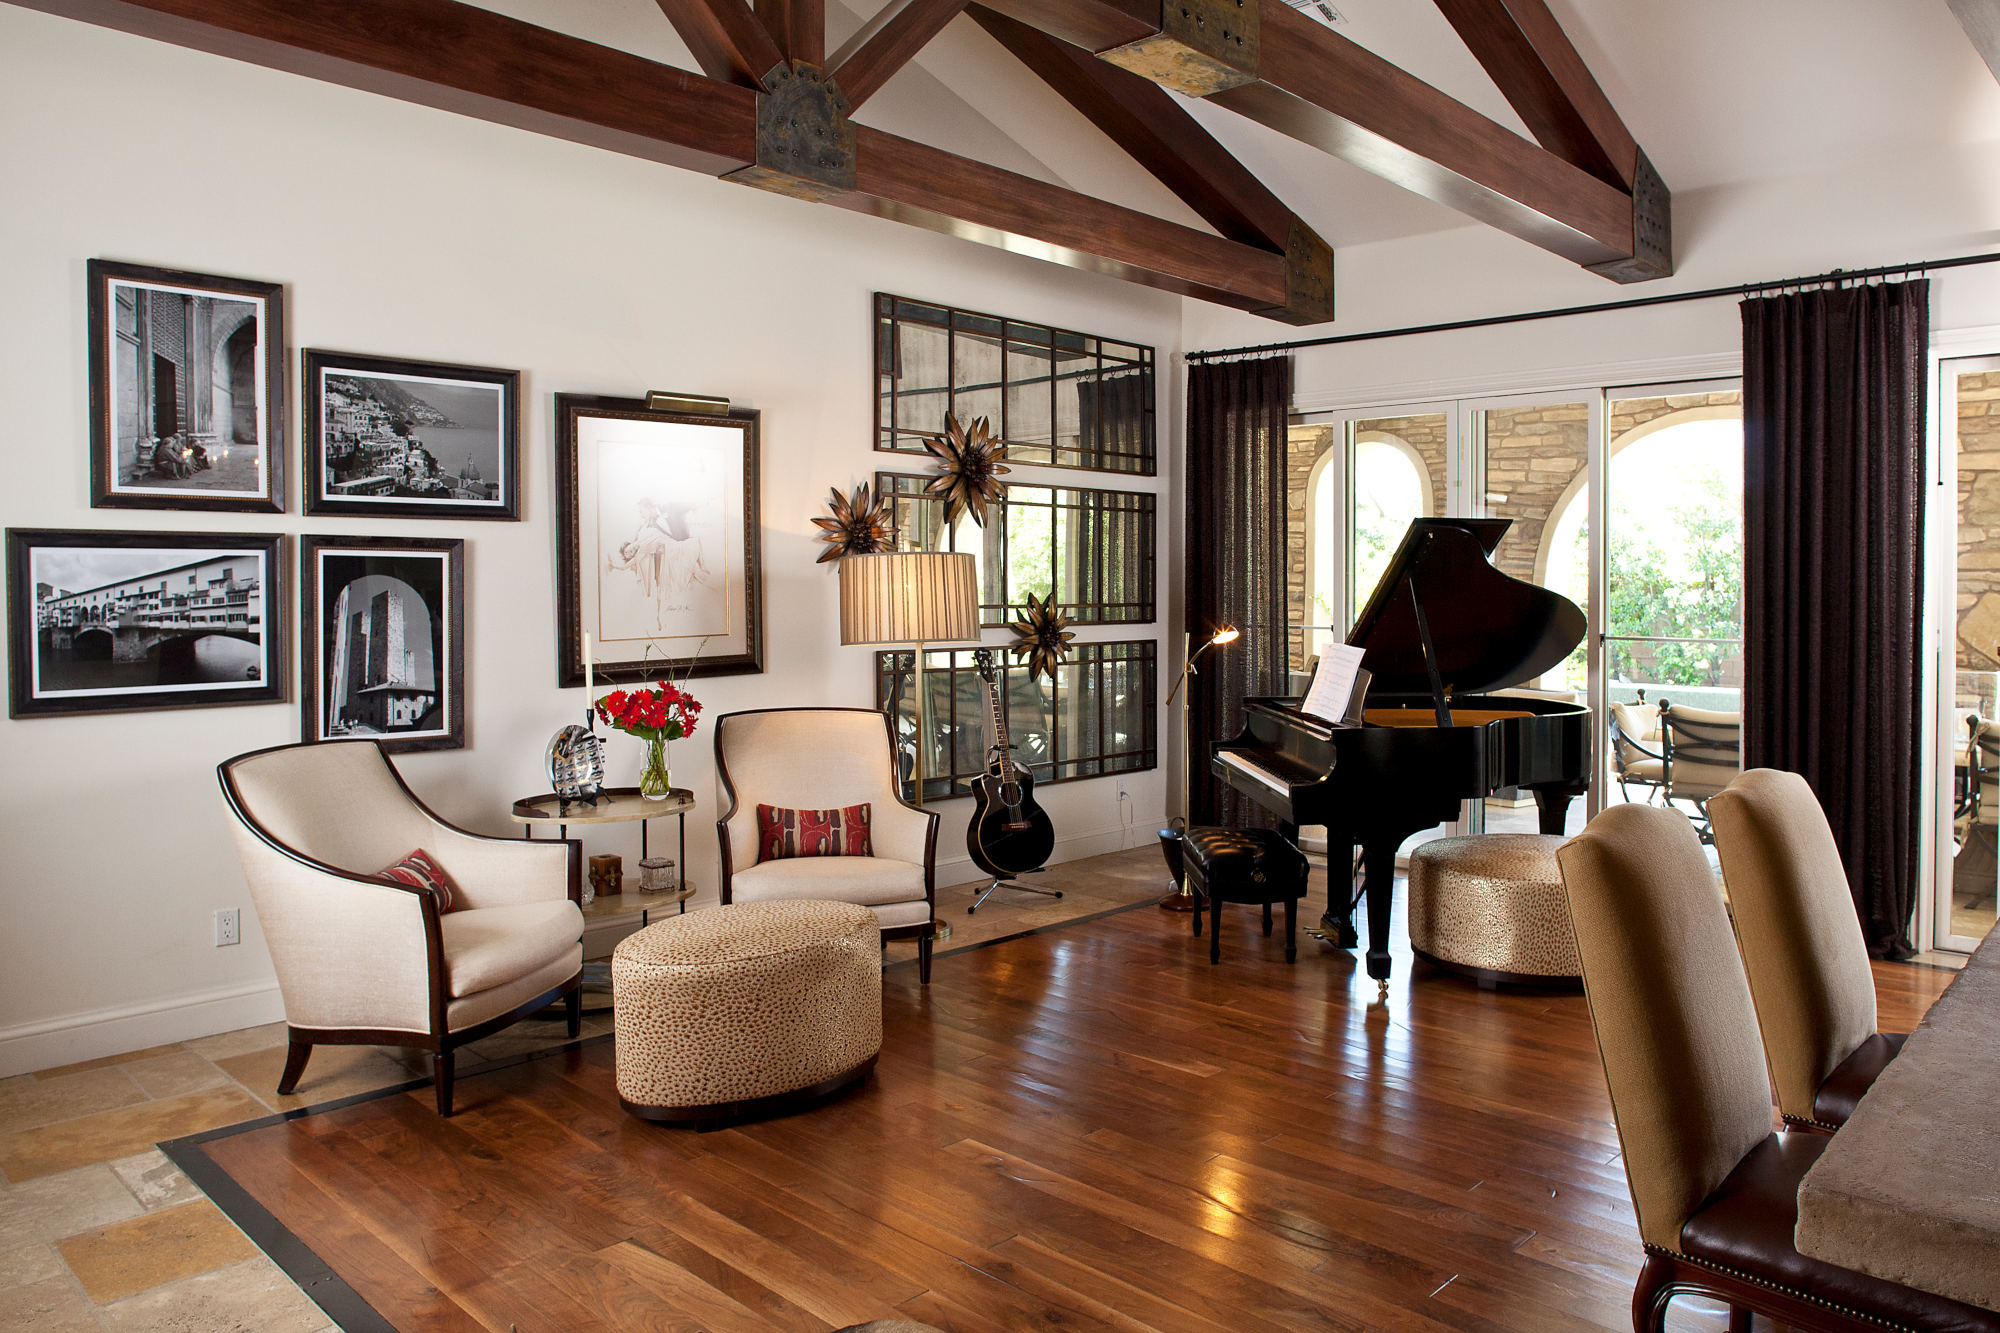 Spanish styled living room with wood ceiling trusses, wood flooring, white walls and black piano.